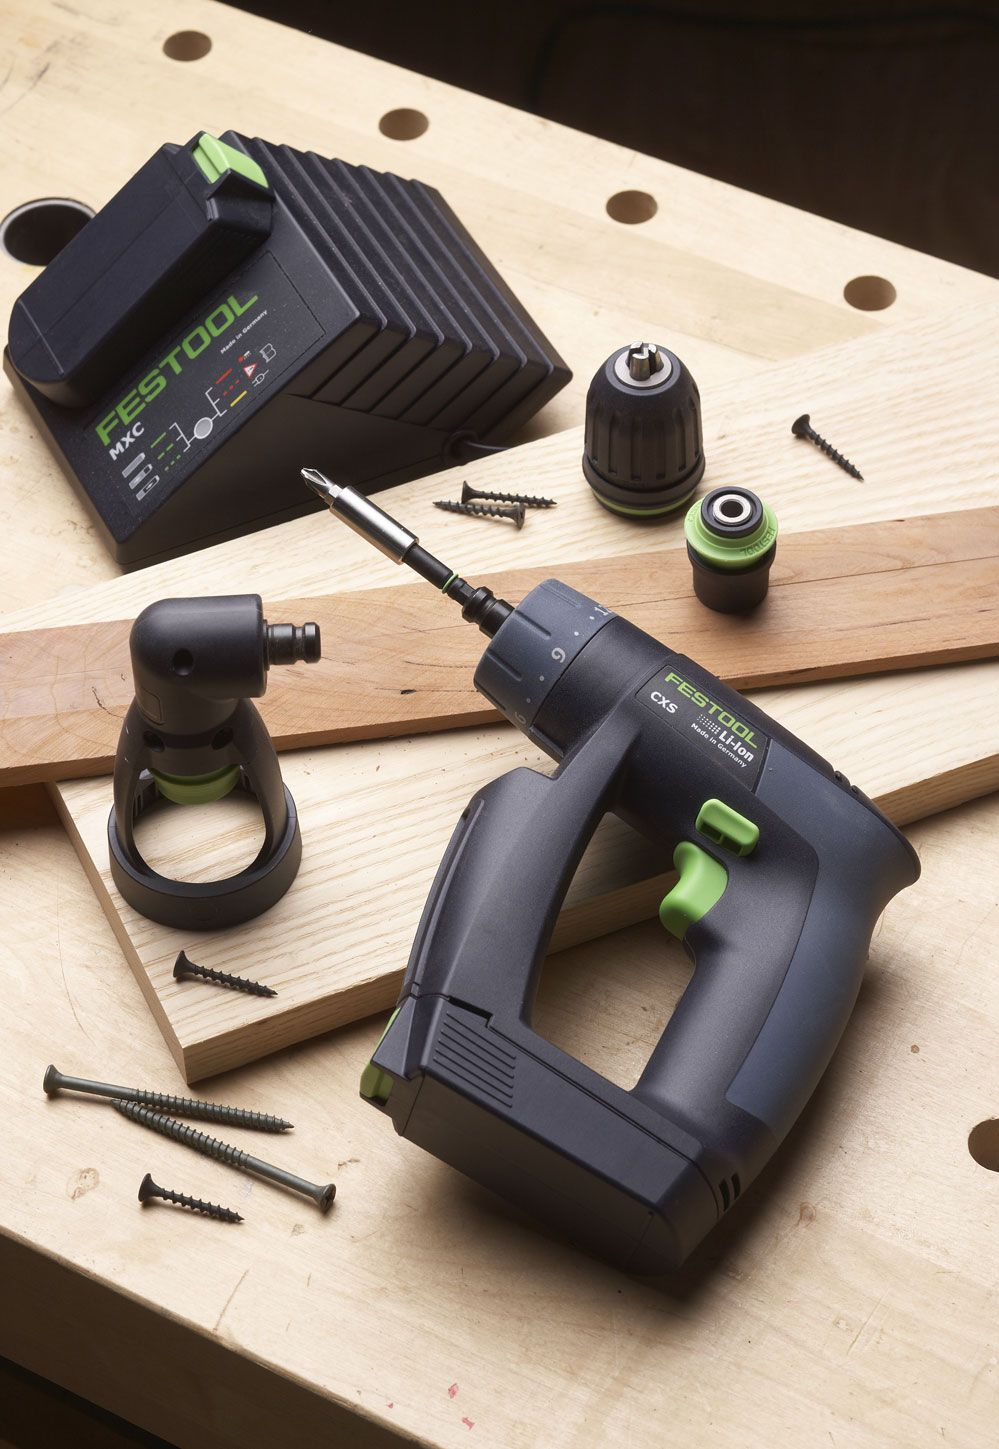 tool test festool cxs drill driver pinterest design produkte werkzeuge und werkstatt. Black Bedroom Furniture Sets. Home Design Ideas